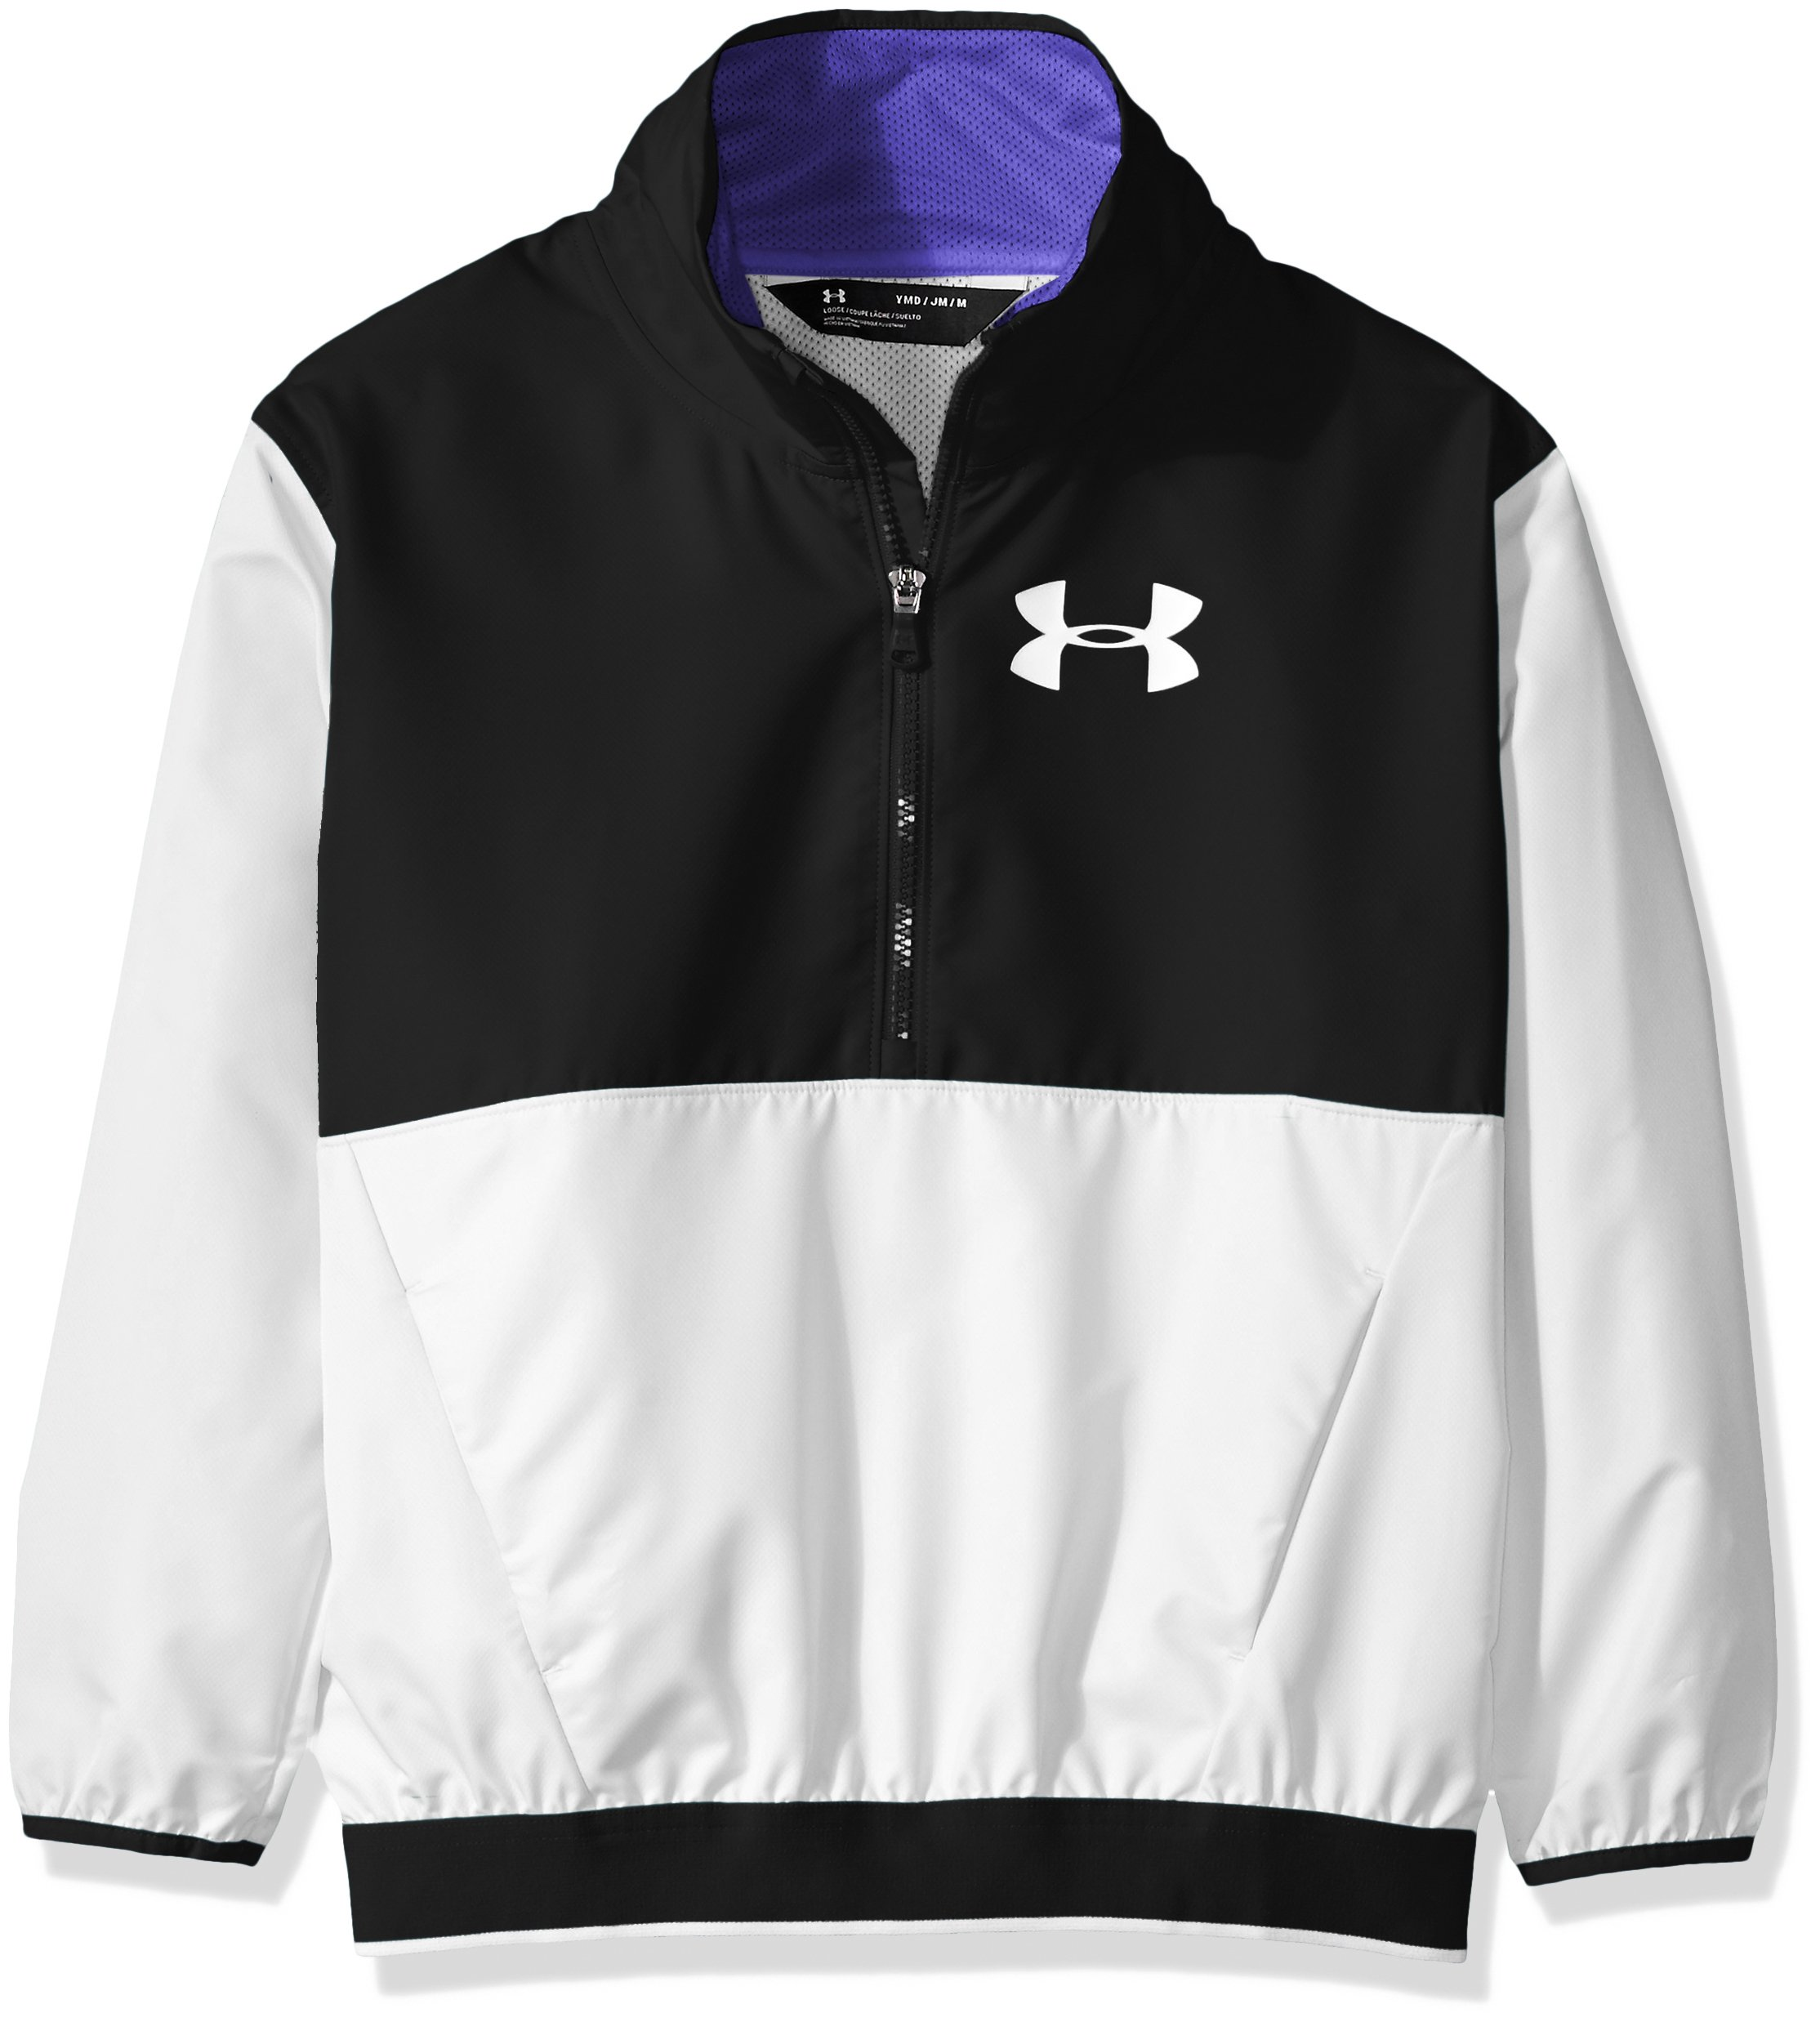 Under Armour Girls' Boat House Jacket,White (100)/White, Youth X-Large by Under Armour